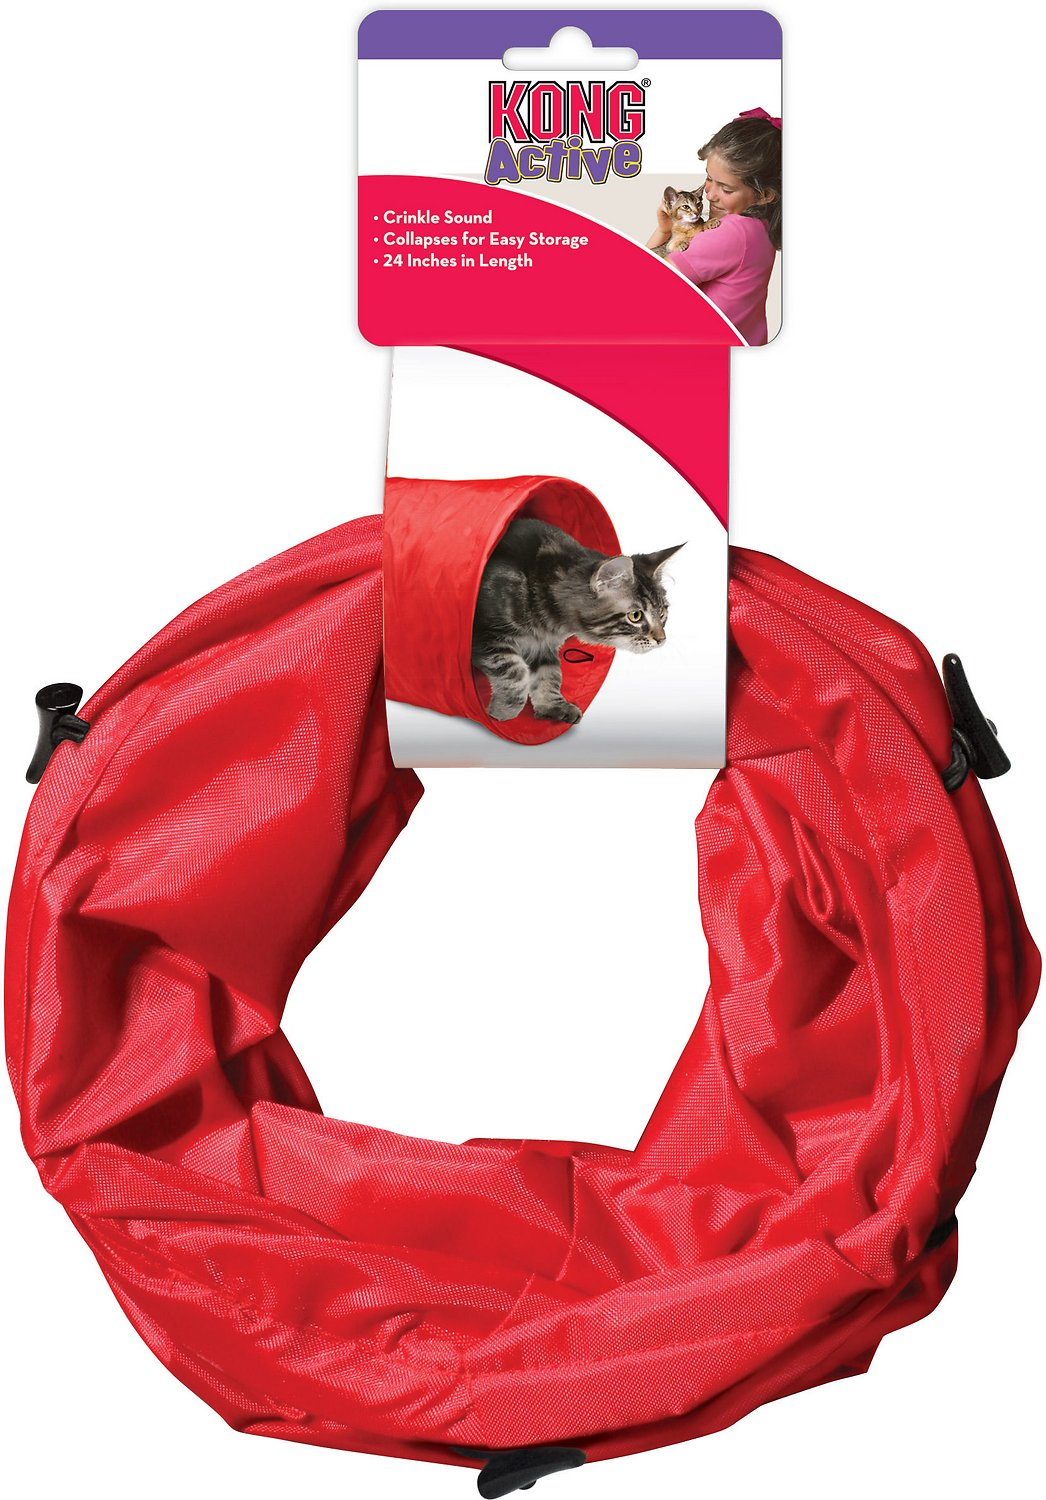 KONG Active Nylon Tunnel Cat Toy, Red Image